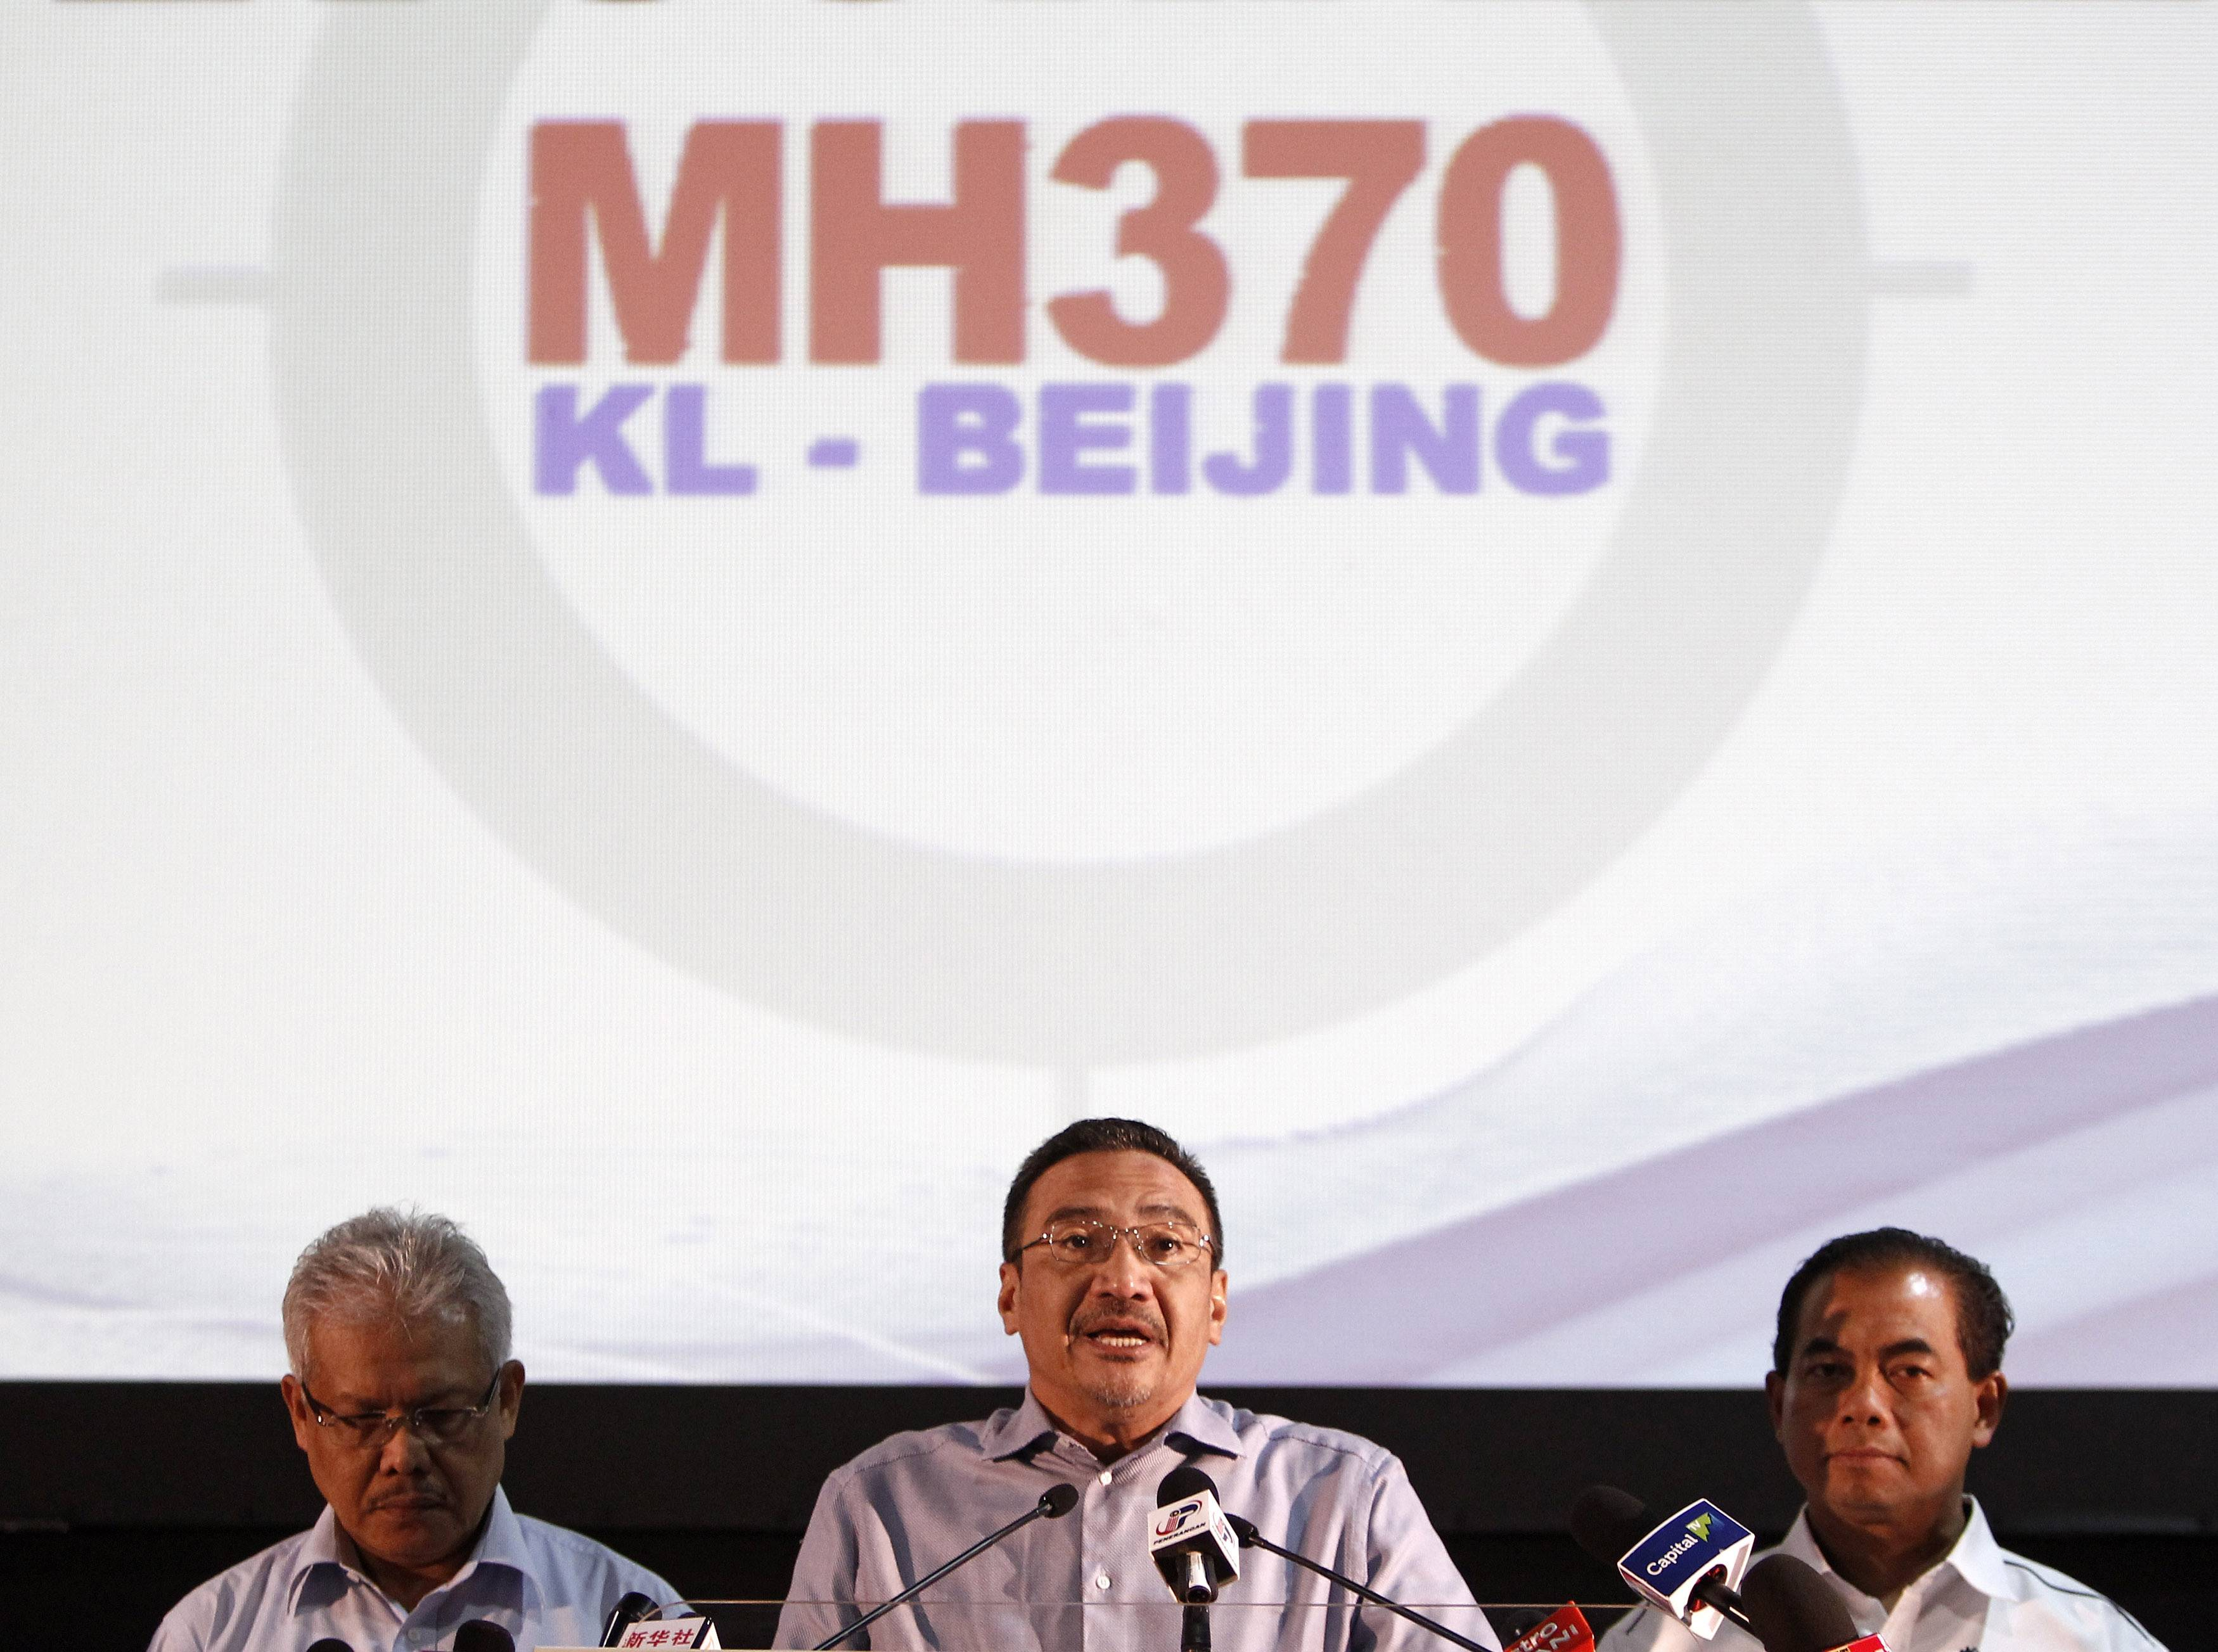 Malaysian acting Transport Minister Hishammuddin Hussein, center, speaks as Malaysian Deputy Foreign Minister Hamzah Zainuddin, left, and Malaysian Deputy Transport Minister Abdul Aziz Kaprawi listen during a news conference for the missing Malaysia Airlines Flight MH370, in Kuala Lumpur, Malaysia, Saturday, April 5, 2014. Search teams racing against time to find the flight recorders from the missing Malaysia Airlines jet crisscrossed another patch of the Indian Ocean on Saturday, four weeks to the day after the airliner vanished.